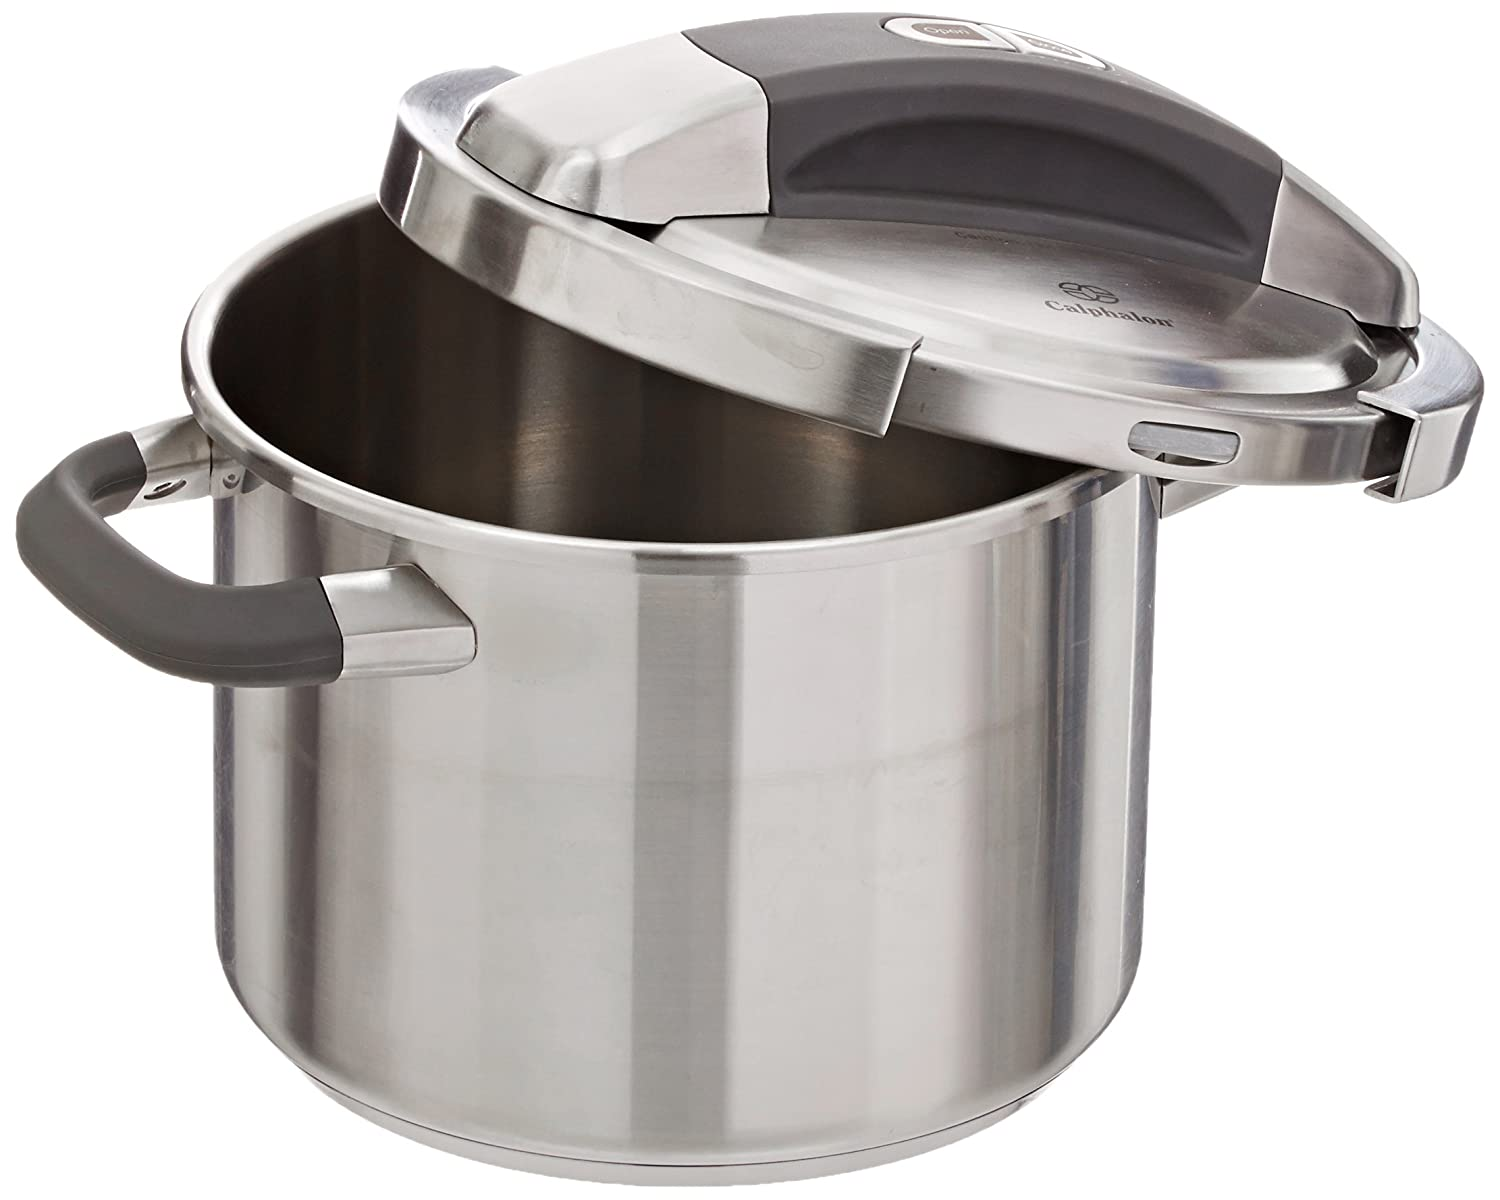 amazoncom calphalon stainless steel pressure cooker 6quart kitchen u0026 dining